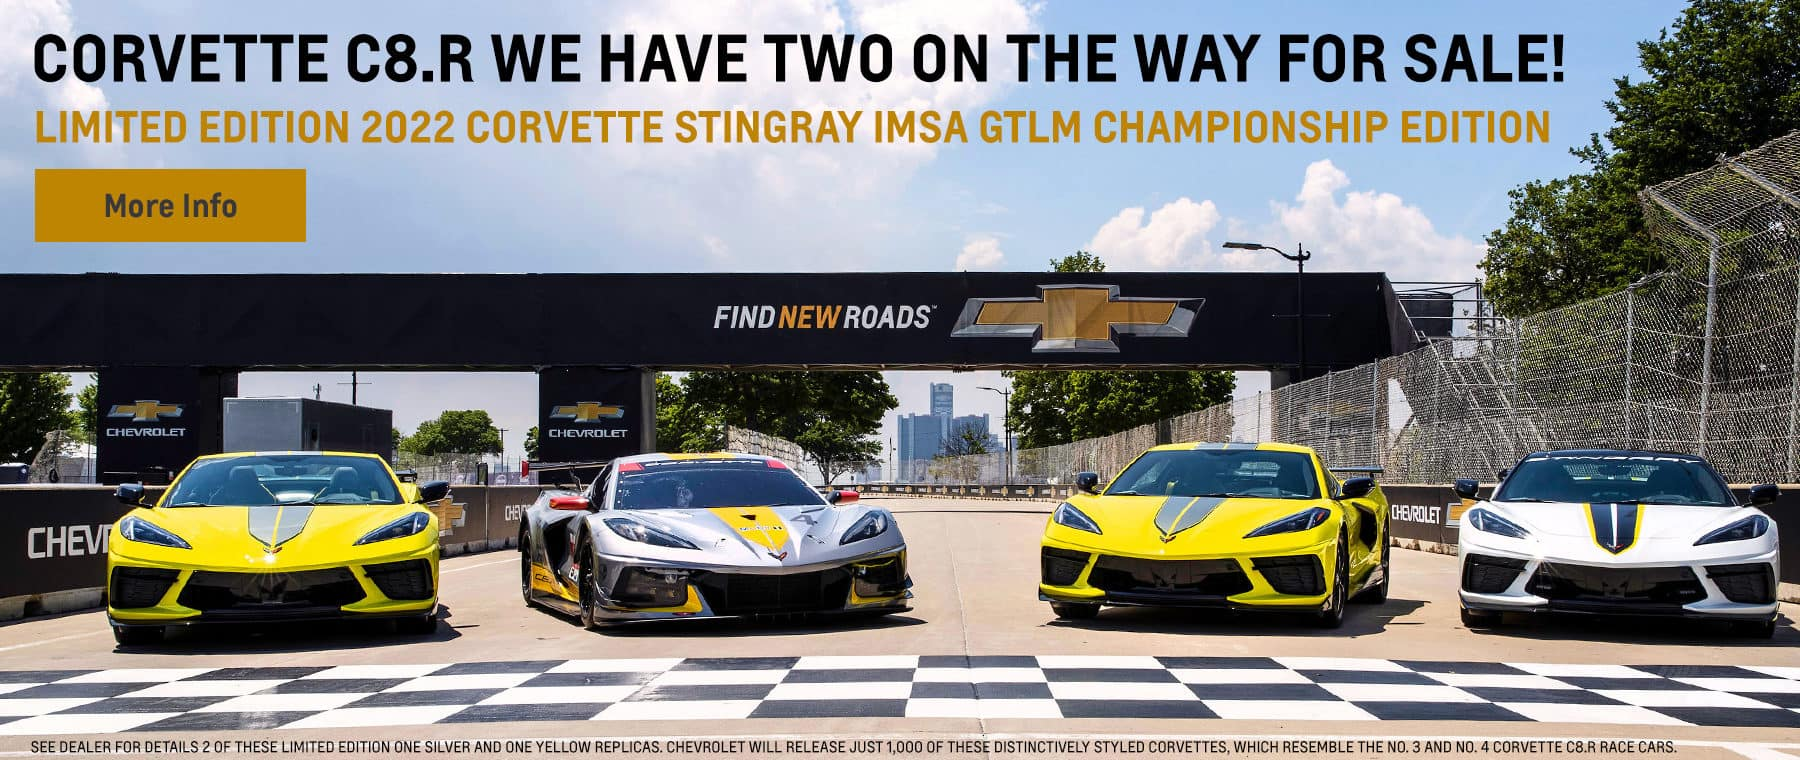 Corvette C8.R. We Have Two on the Way for Sale! Limited Edition 2022 Corvette Stingray IMSA GTLM Championship Edition